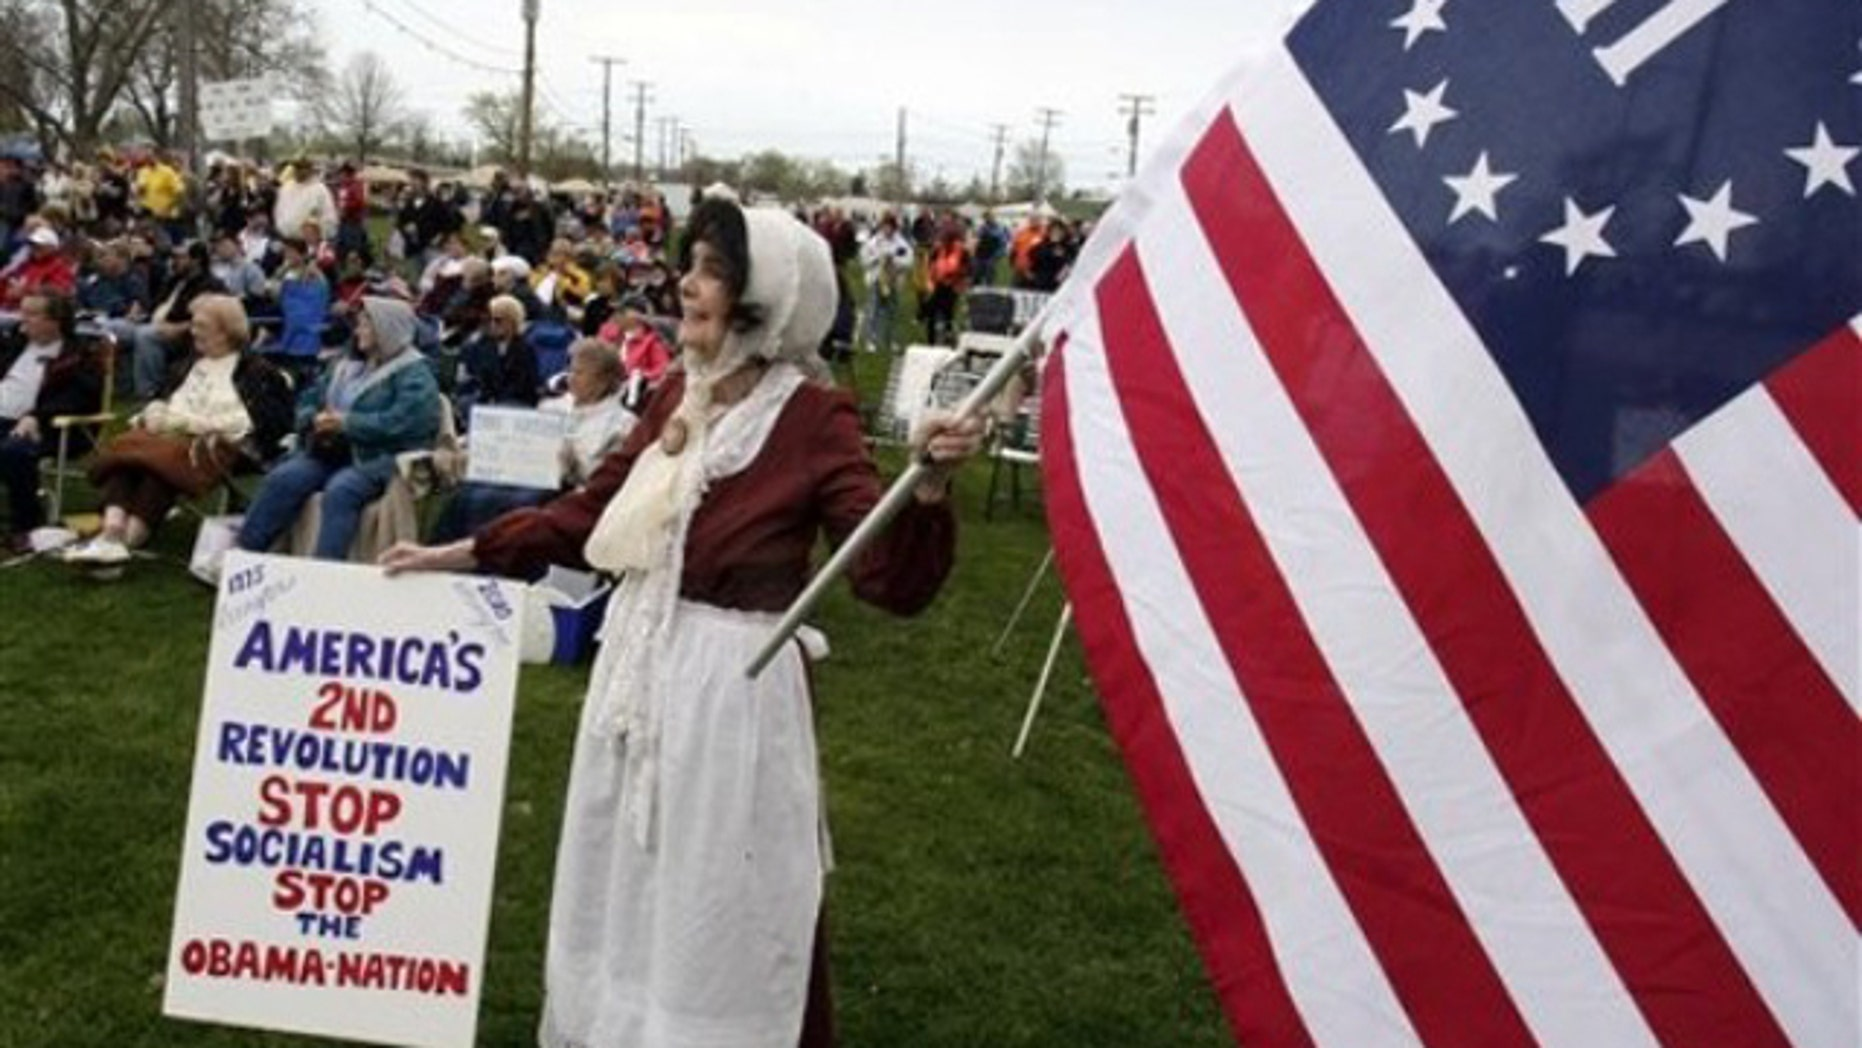 Marion Von Duyke-Murray participates in a a tea party rally at the Cuyahoga County Fairground Sunday, April 11, 2010, in Berea, Ohio. (AP)